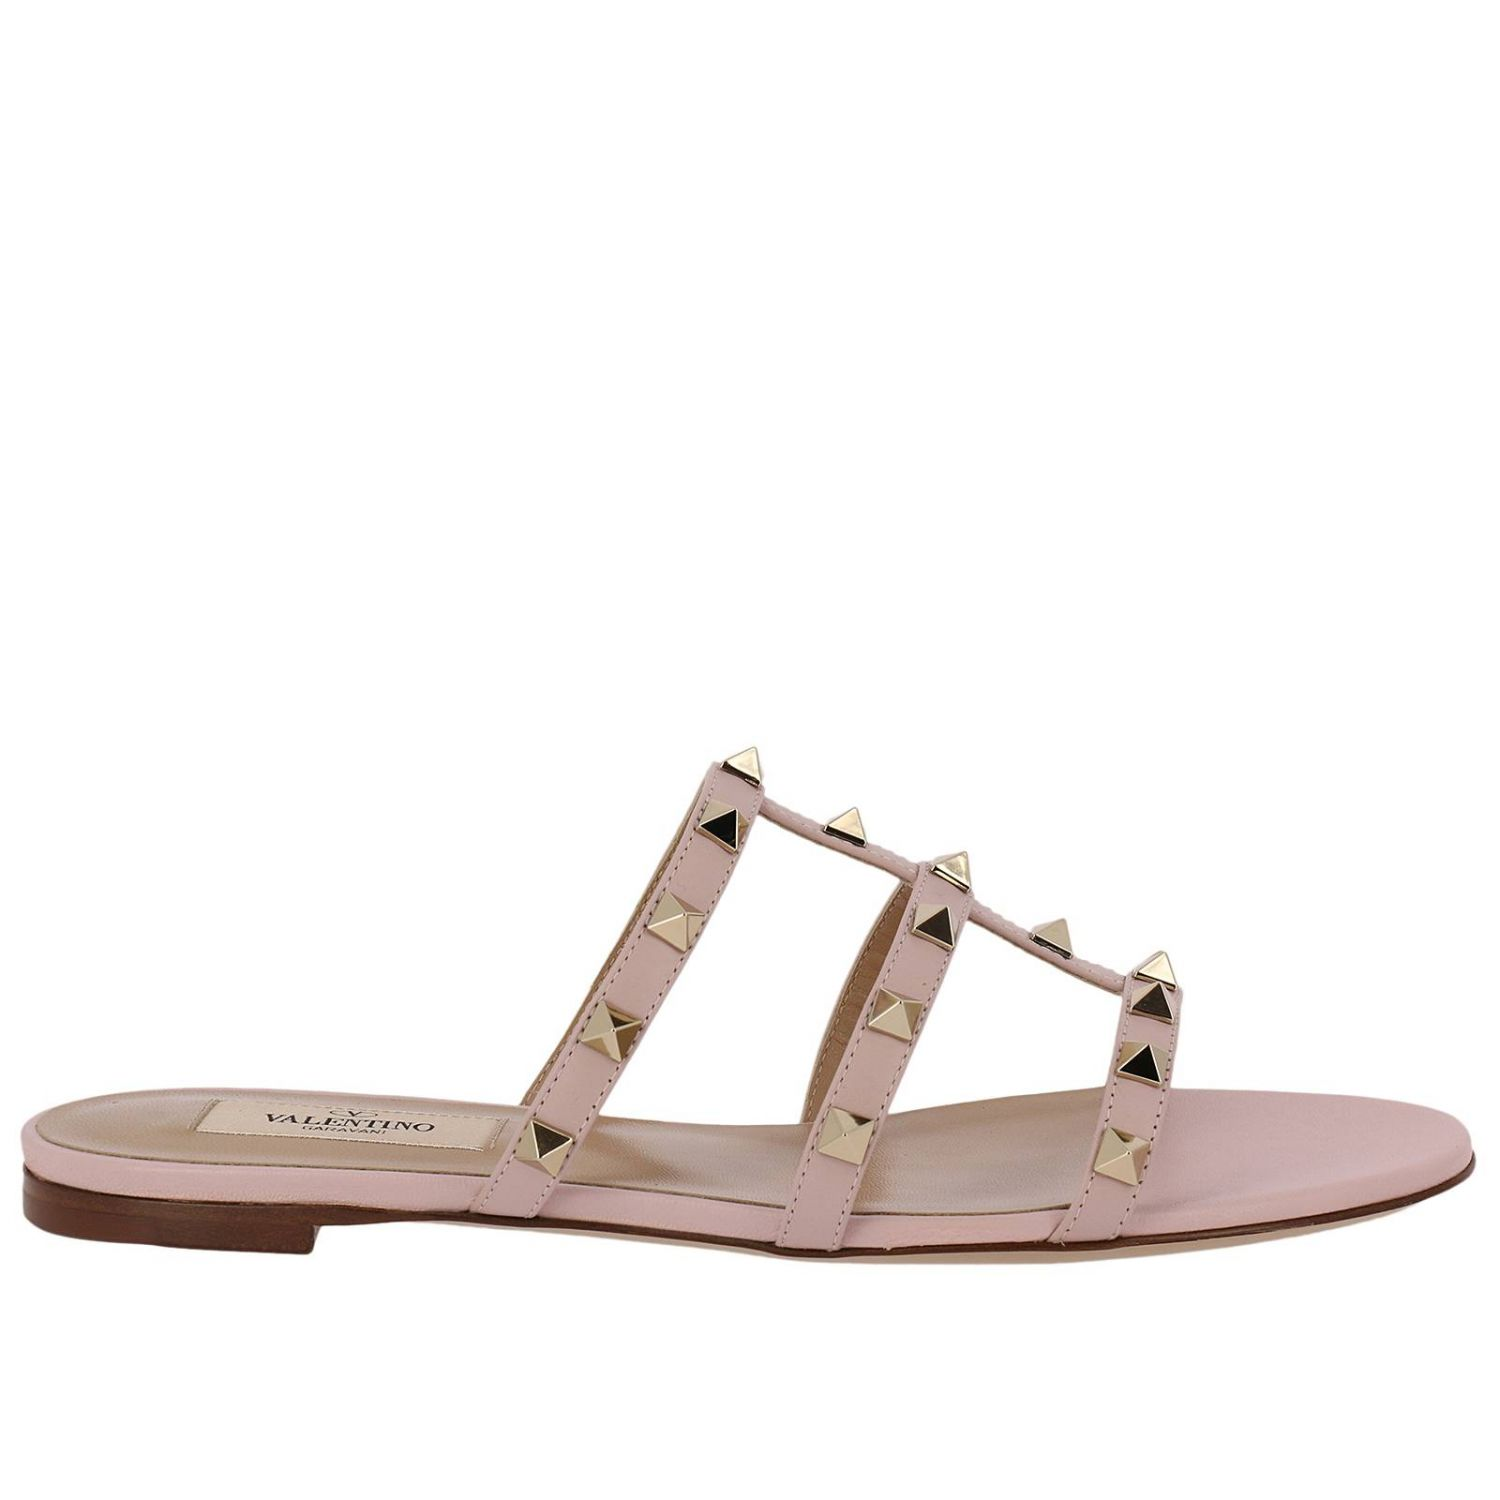 Flat Sandals Valentino Rockstud Sandal Flats In Genuine Laminated Leather With Metal Studs 8287273